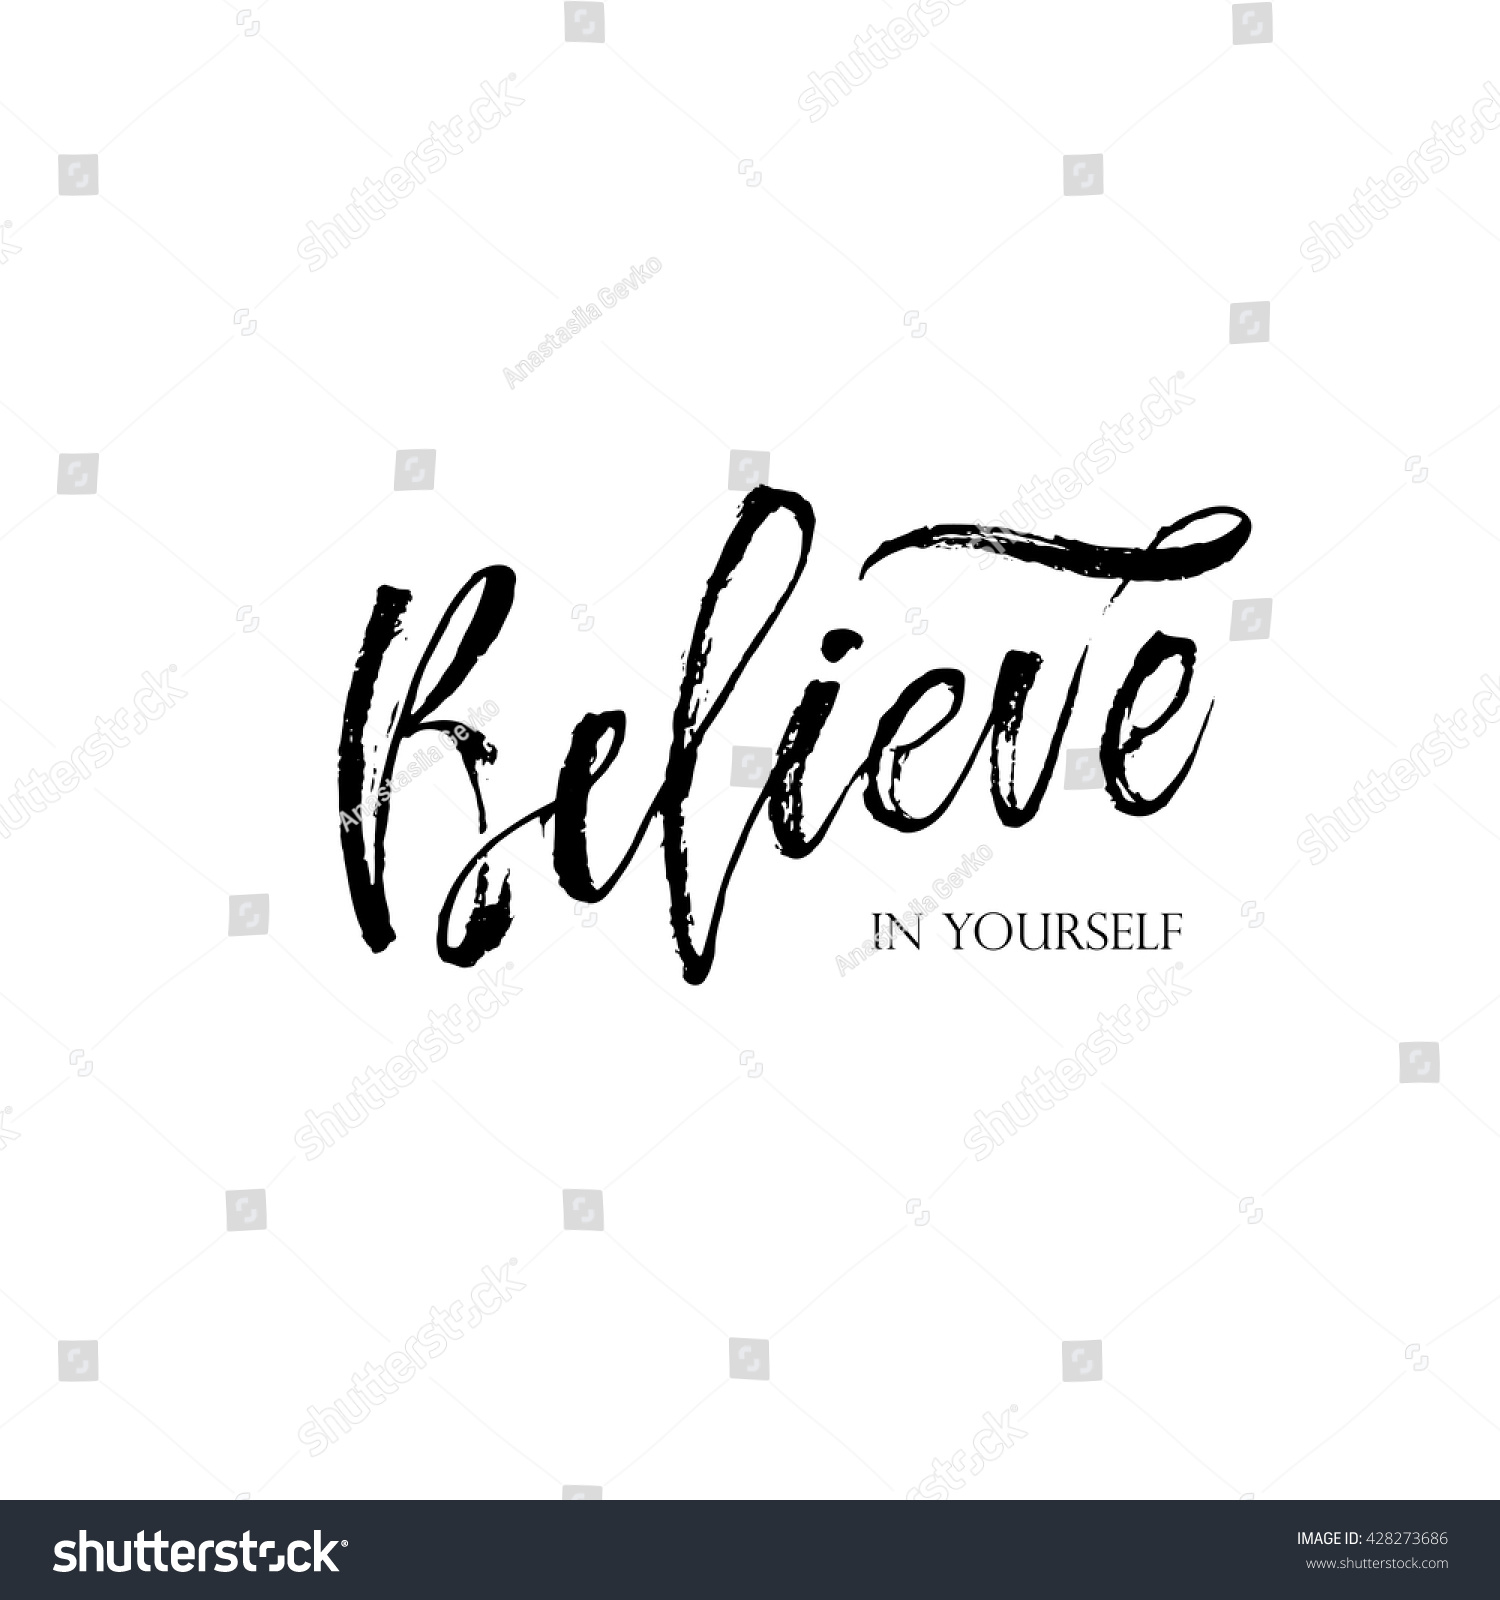 Believe In Yourself Lettering Card Inspirational And